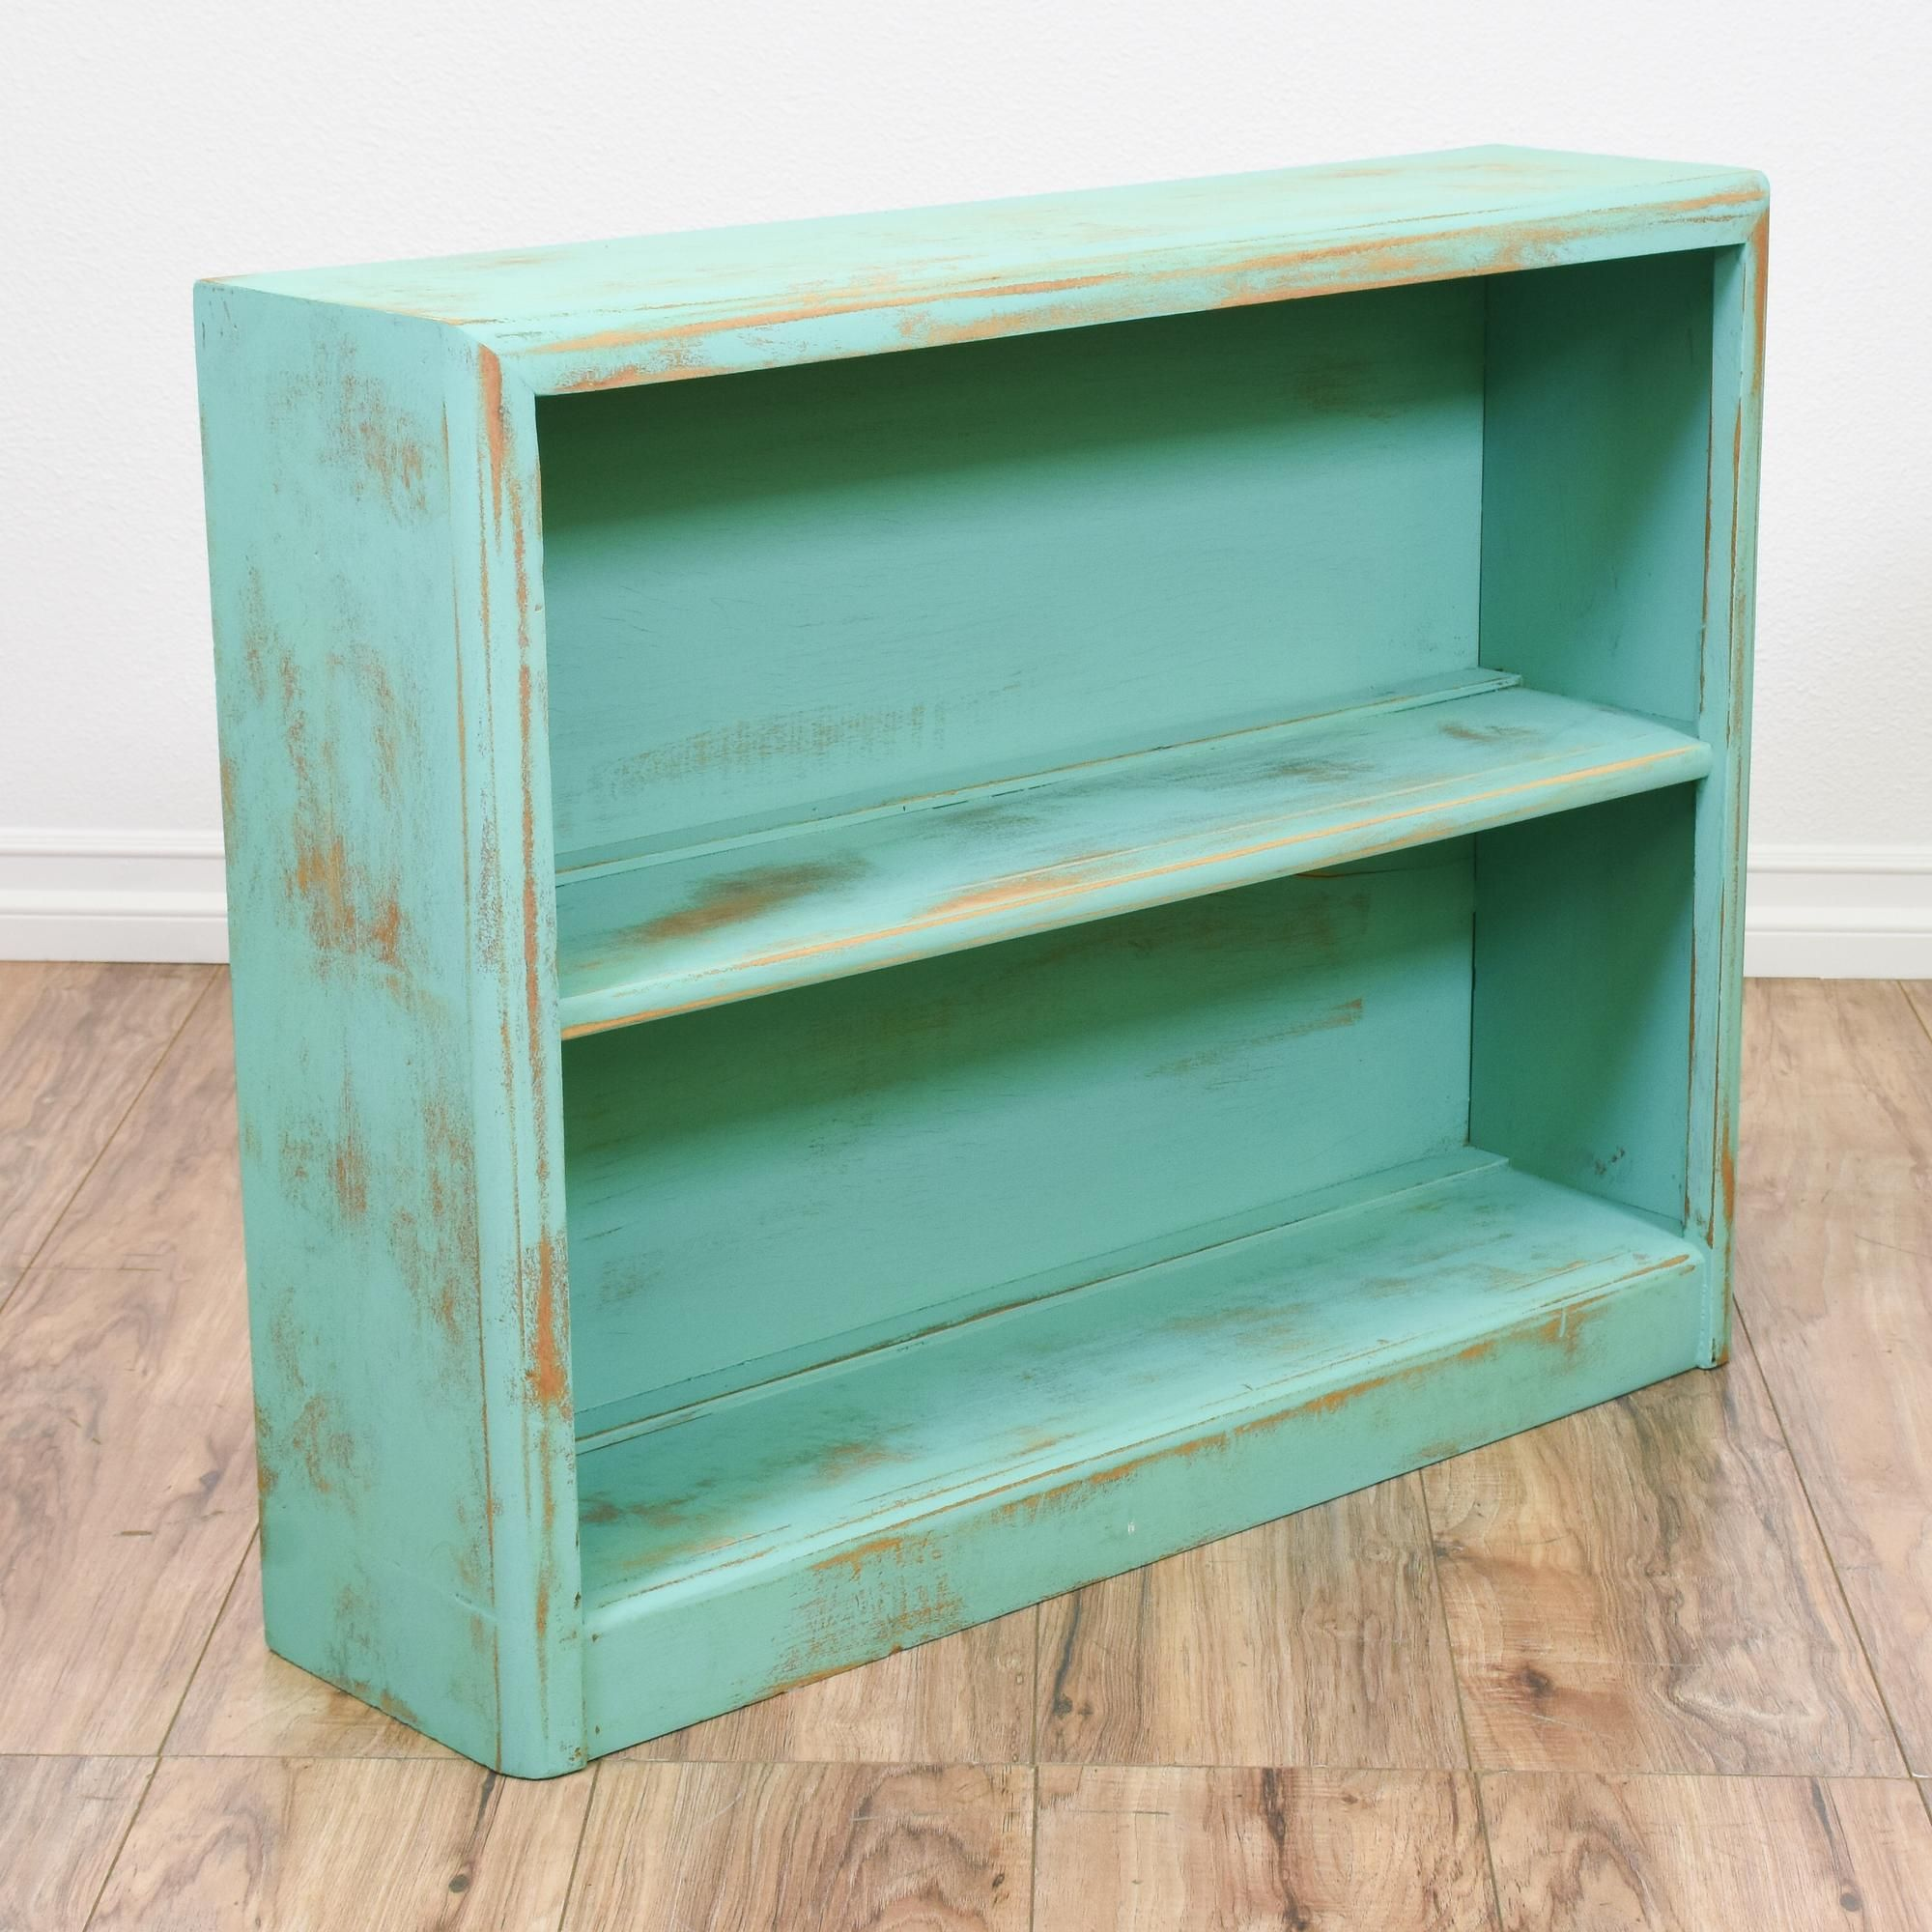 in large entry best shabby dutch img the pic as a with find craigslist table top end bookcase interesting rustic chic was distressed to bathroom bookshelf white